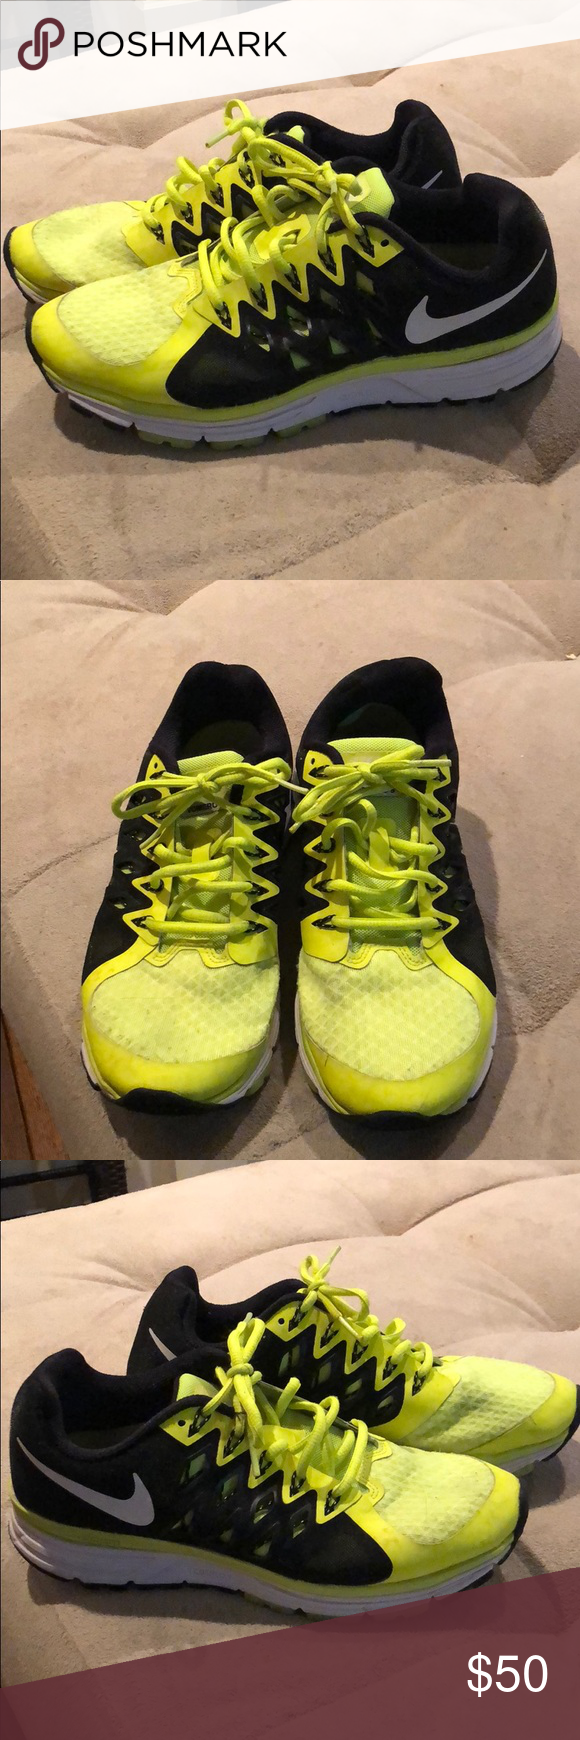 pretty nice 26ef6 adc8b Nike Vomero 9 neon yellow and black shoes Minimal wear. Size 8 men s.  Women s 9.5. Great condition. Good shoe for heel support but light enough  for ...